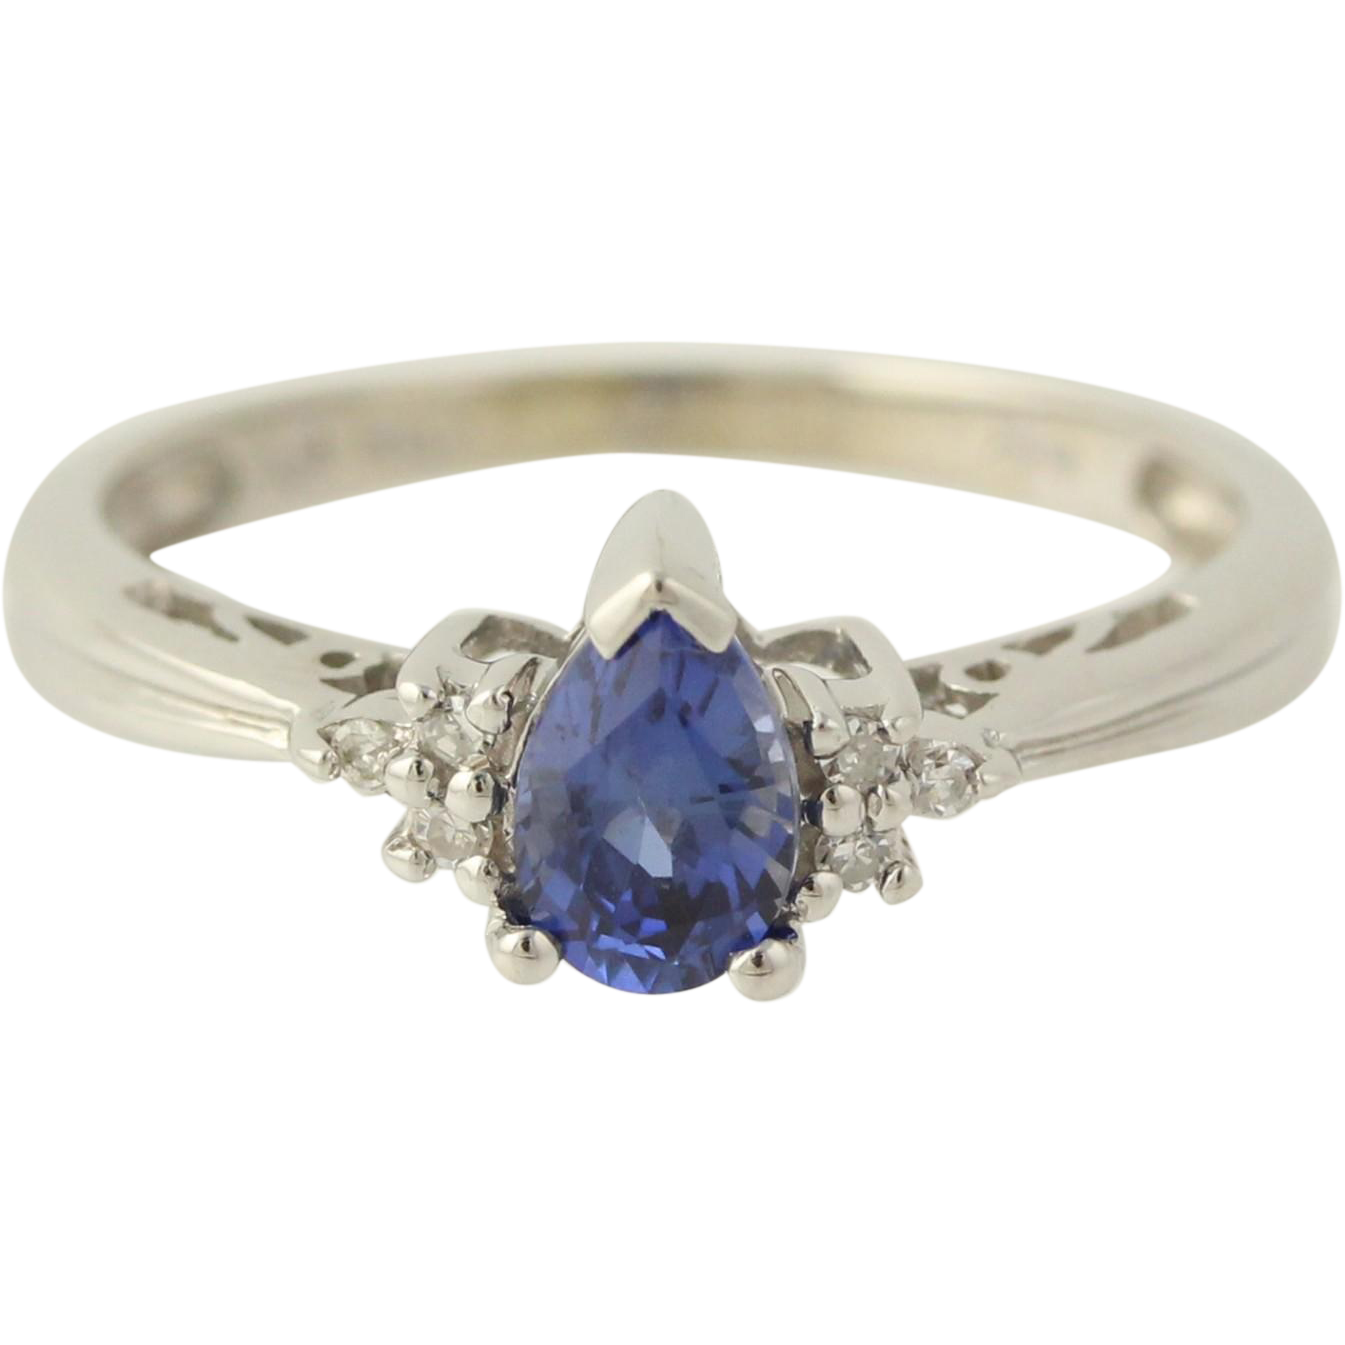 Synthetic Sapphire & Diamond Ring - 14k White Gold September 5 1/2 Fine .52ctw